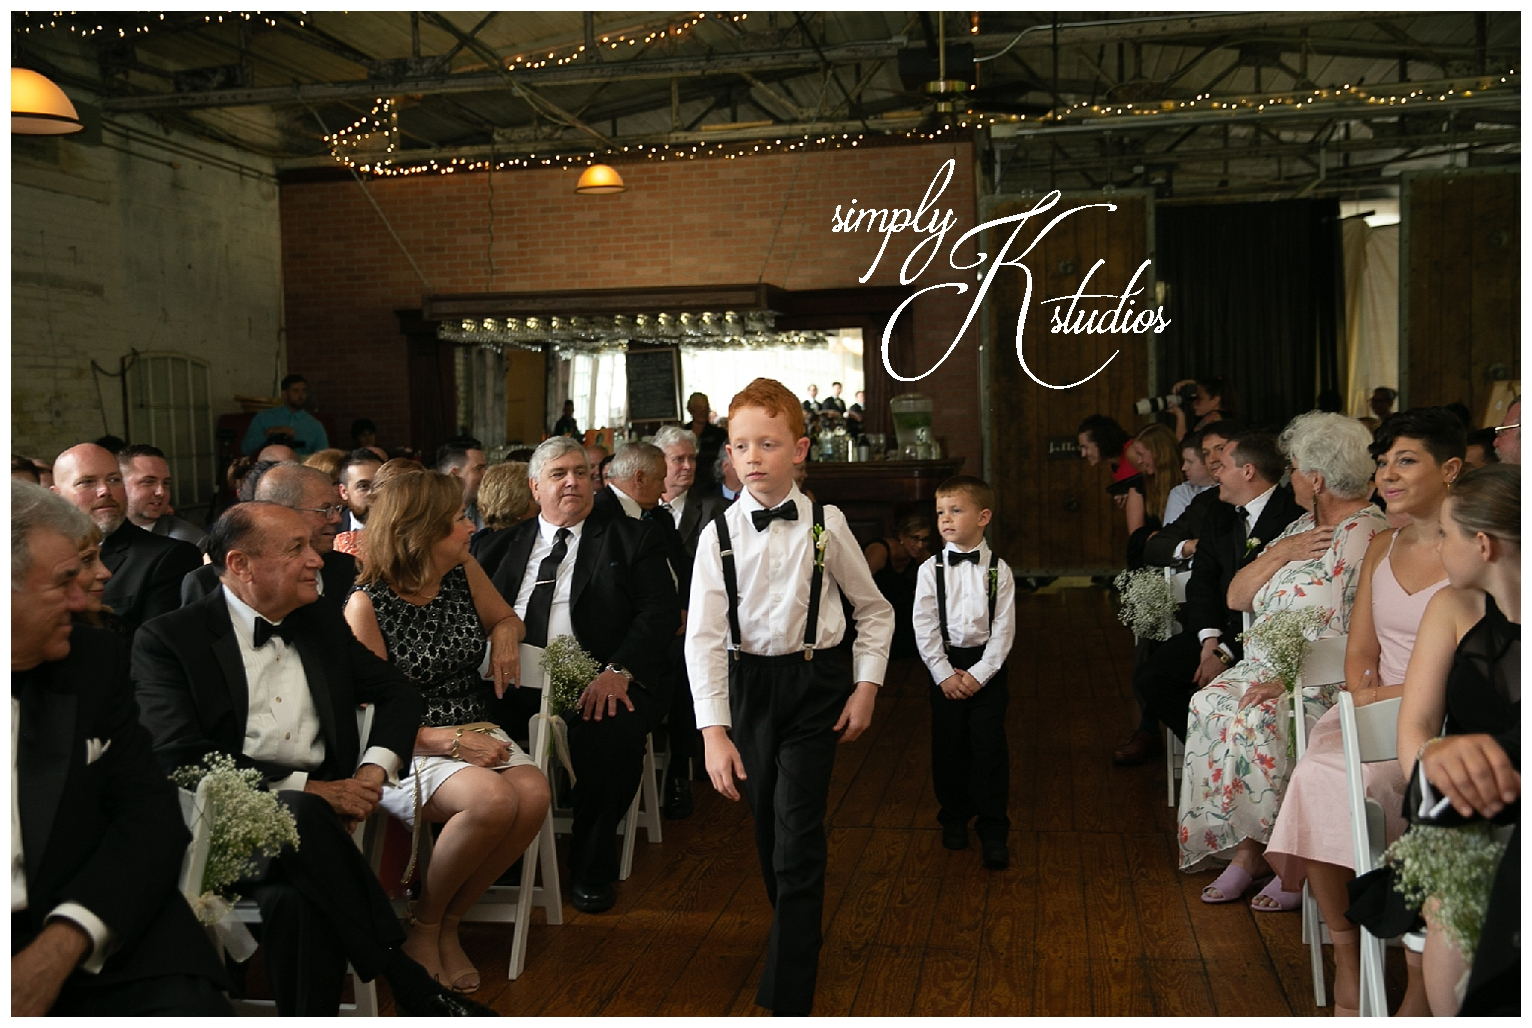 Ring Bearers at a Wedding.jpg